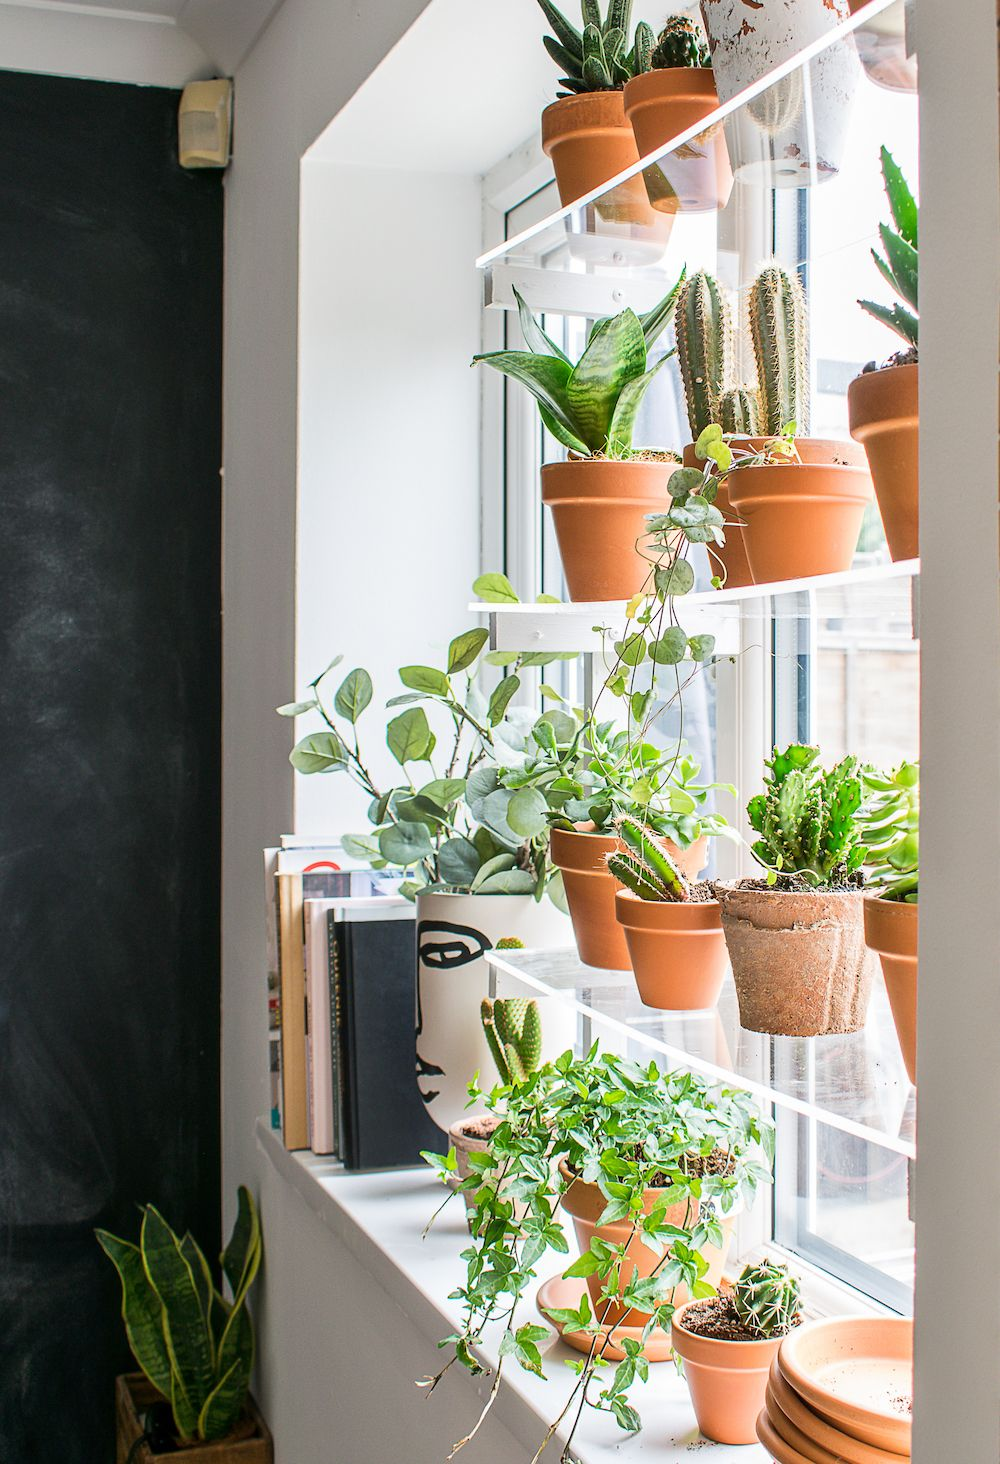 Diy Floating Window Plant Shelf